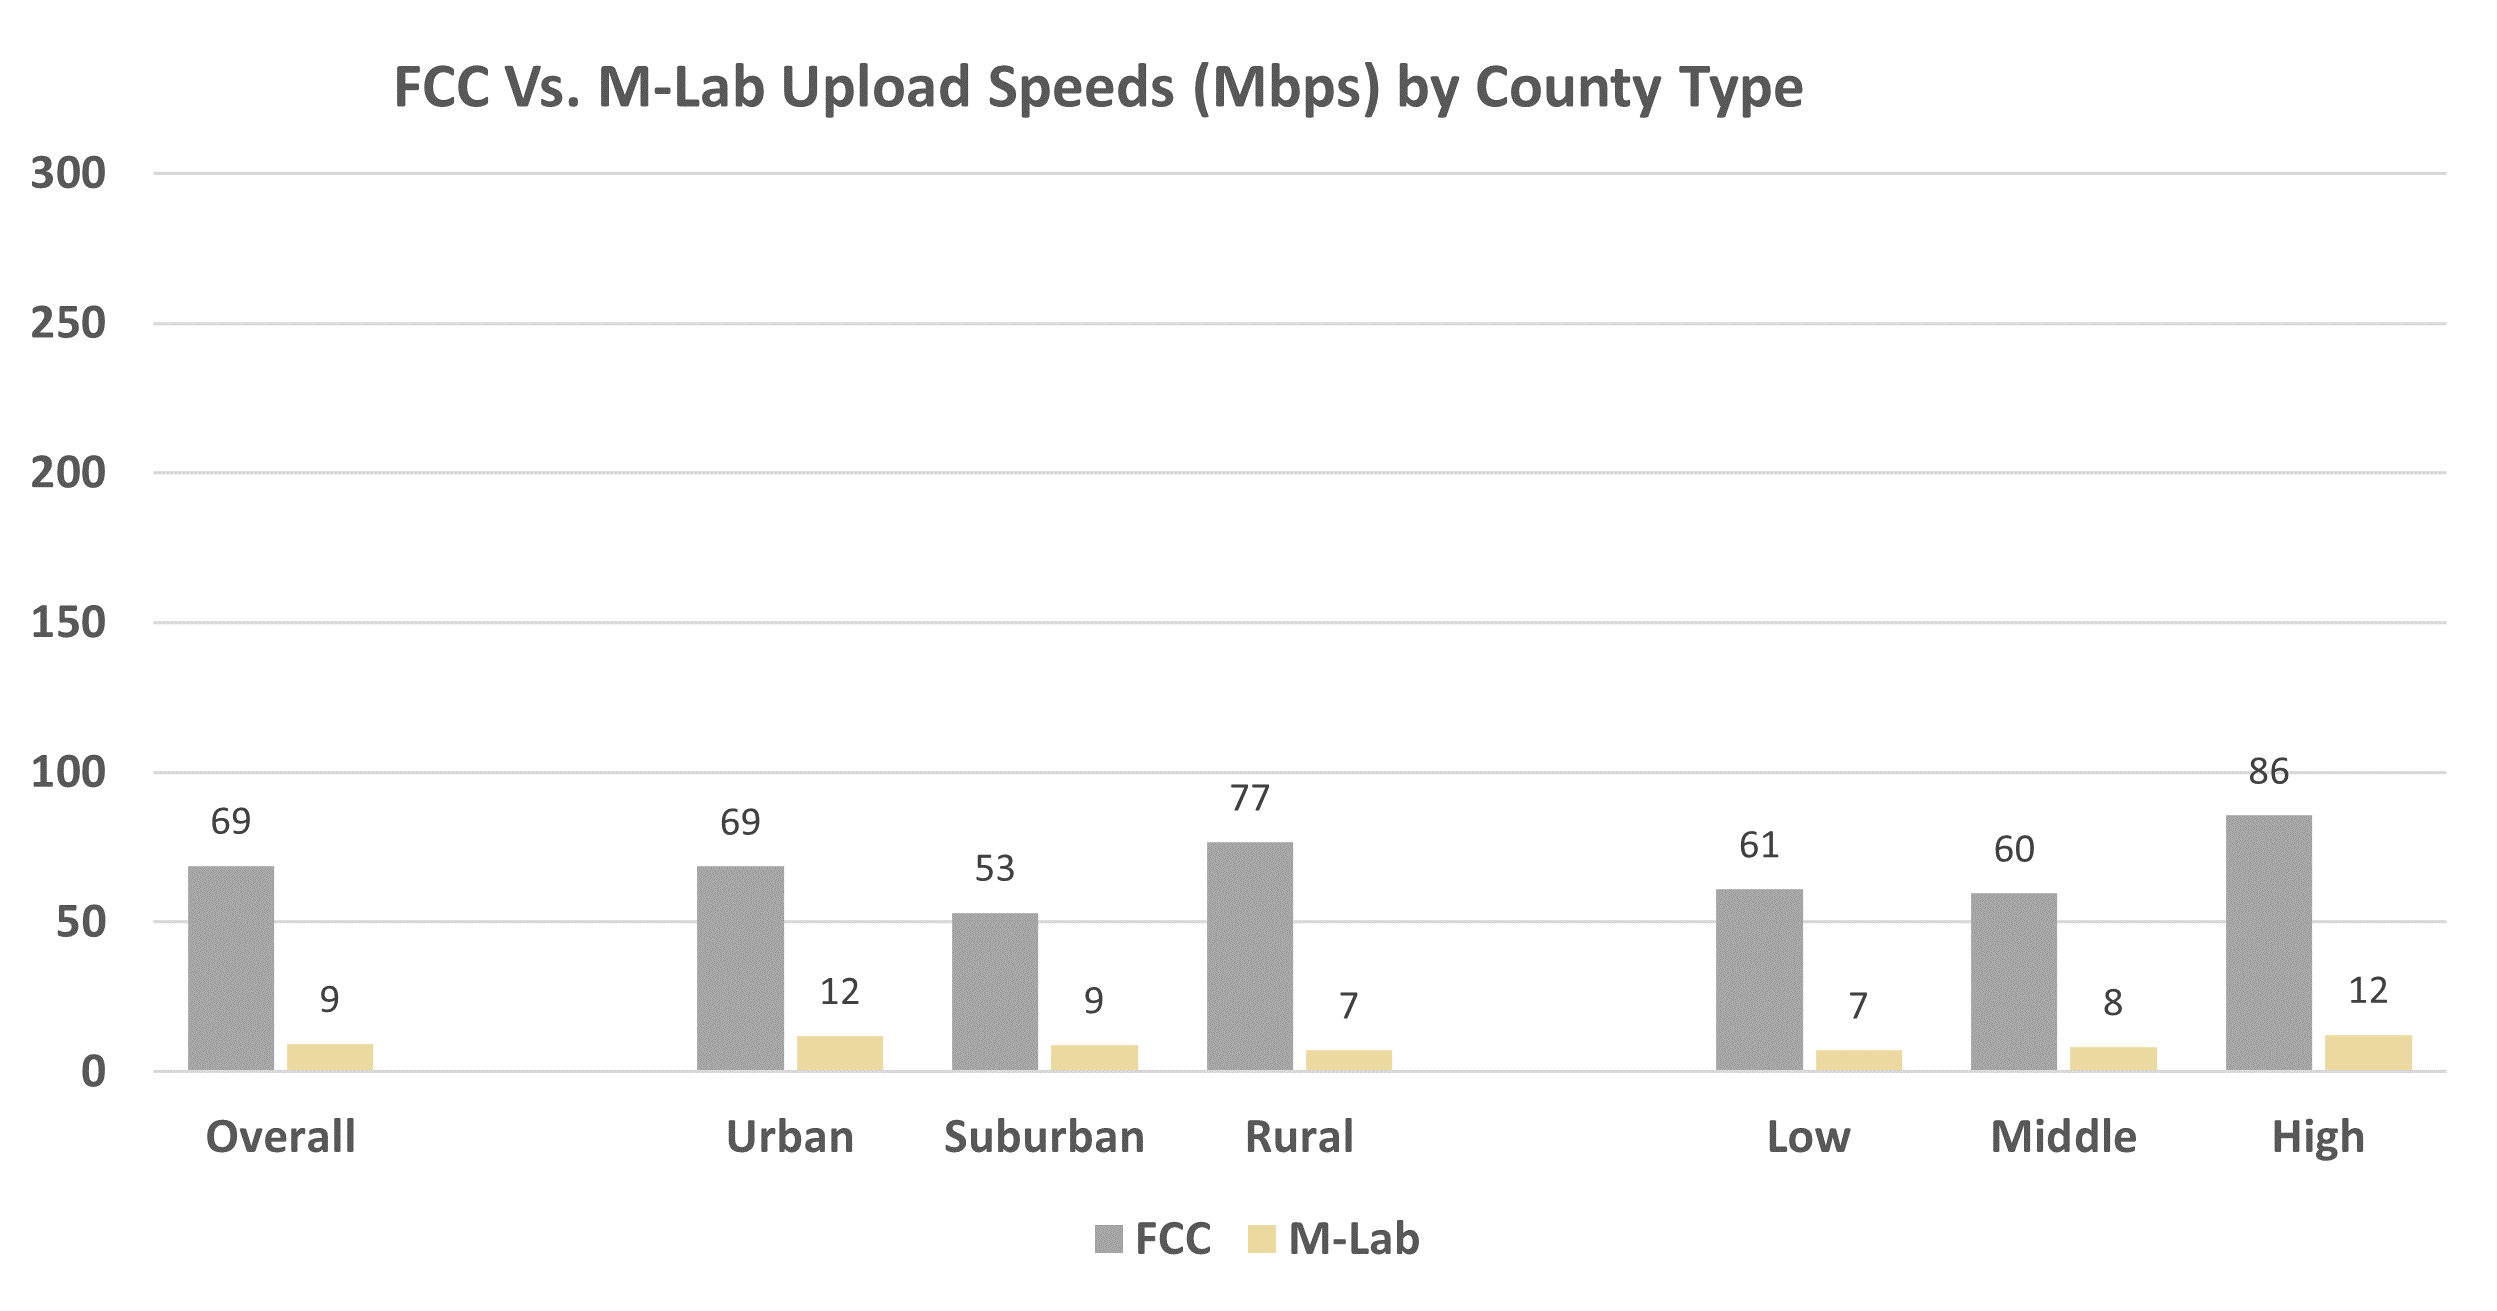 FCC Vs. M-Lab Upload Speeds (Mbps) by County Type